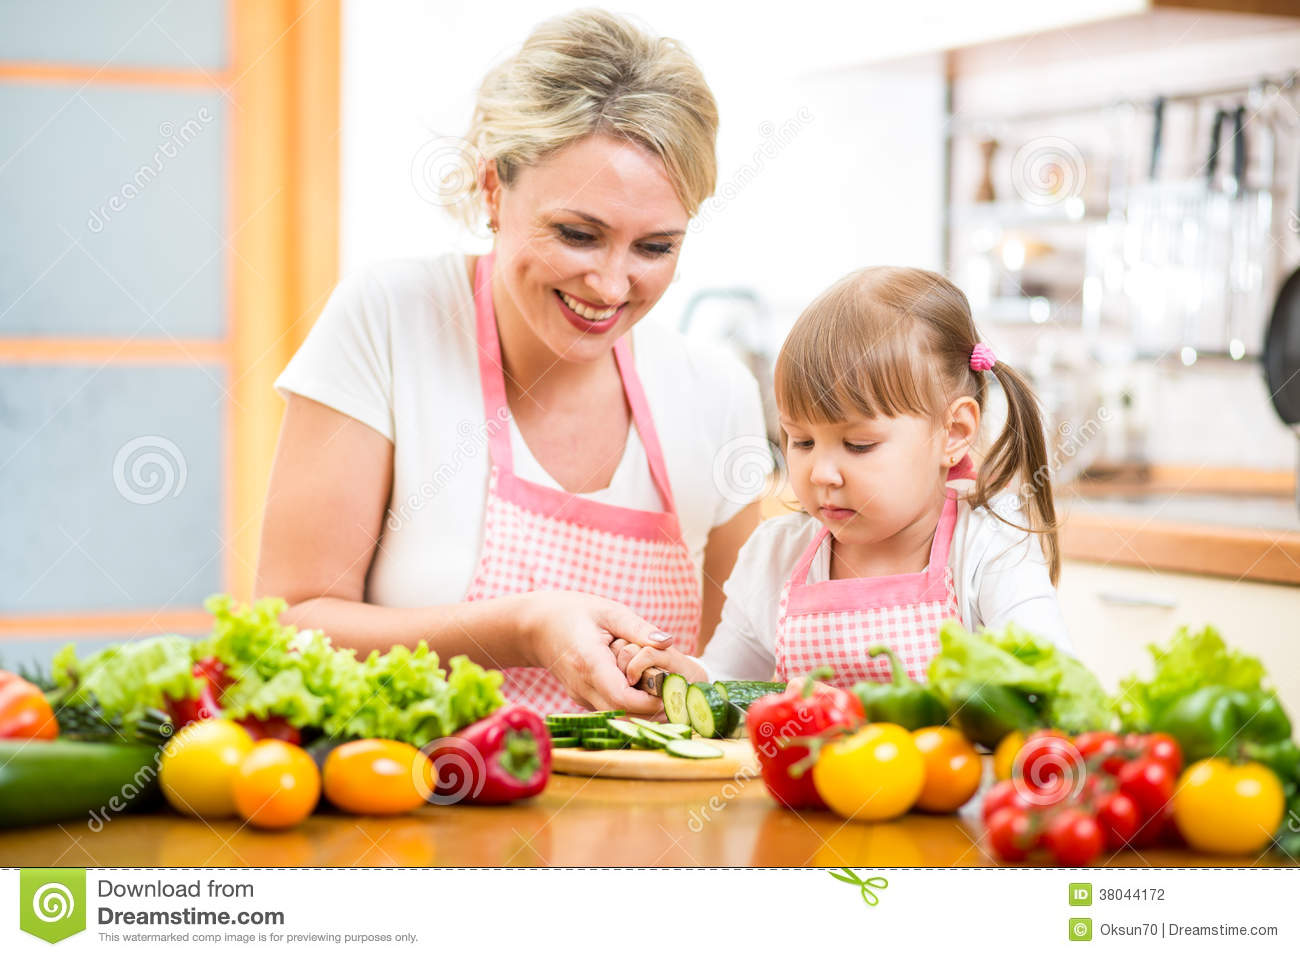 Mom And Kid Preparing Healthy Food Stock Photography - Image: 38044172